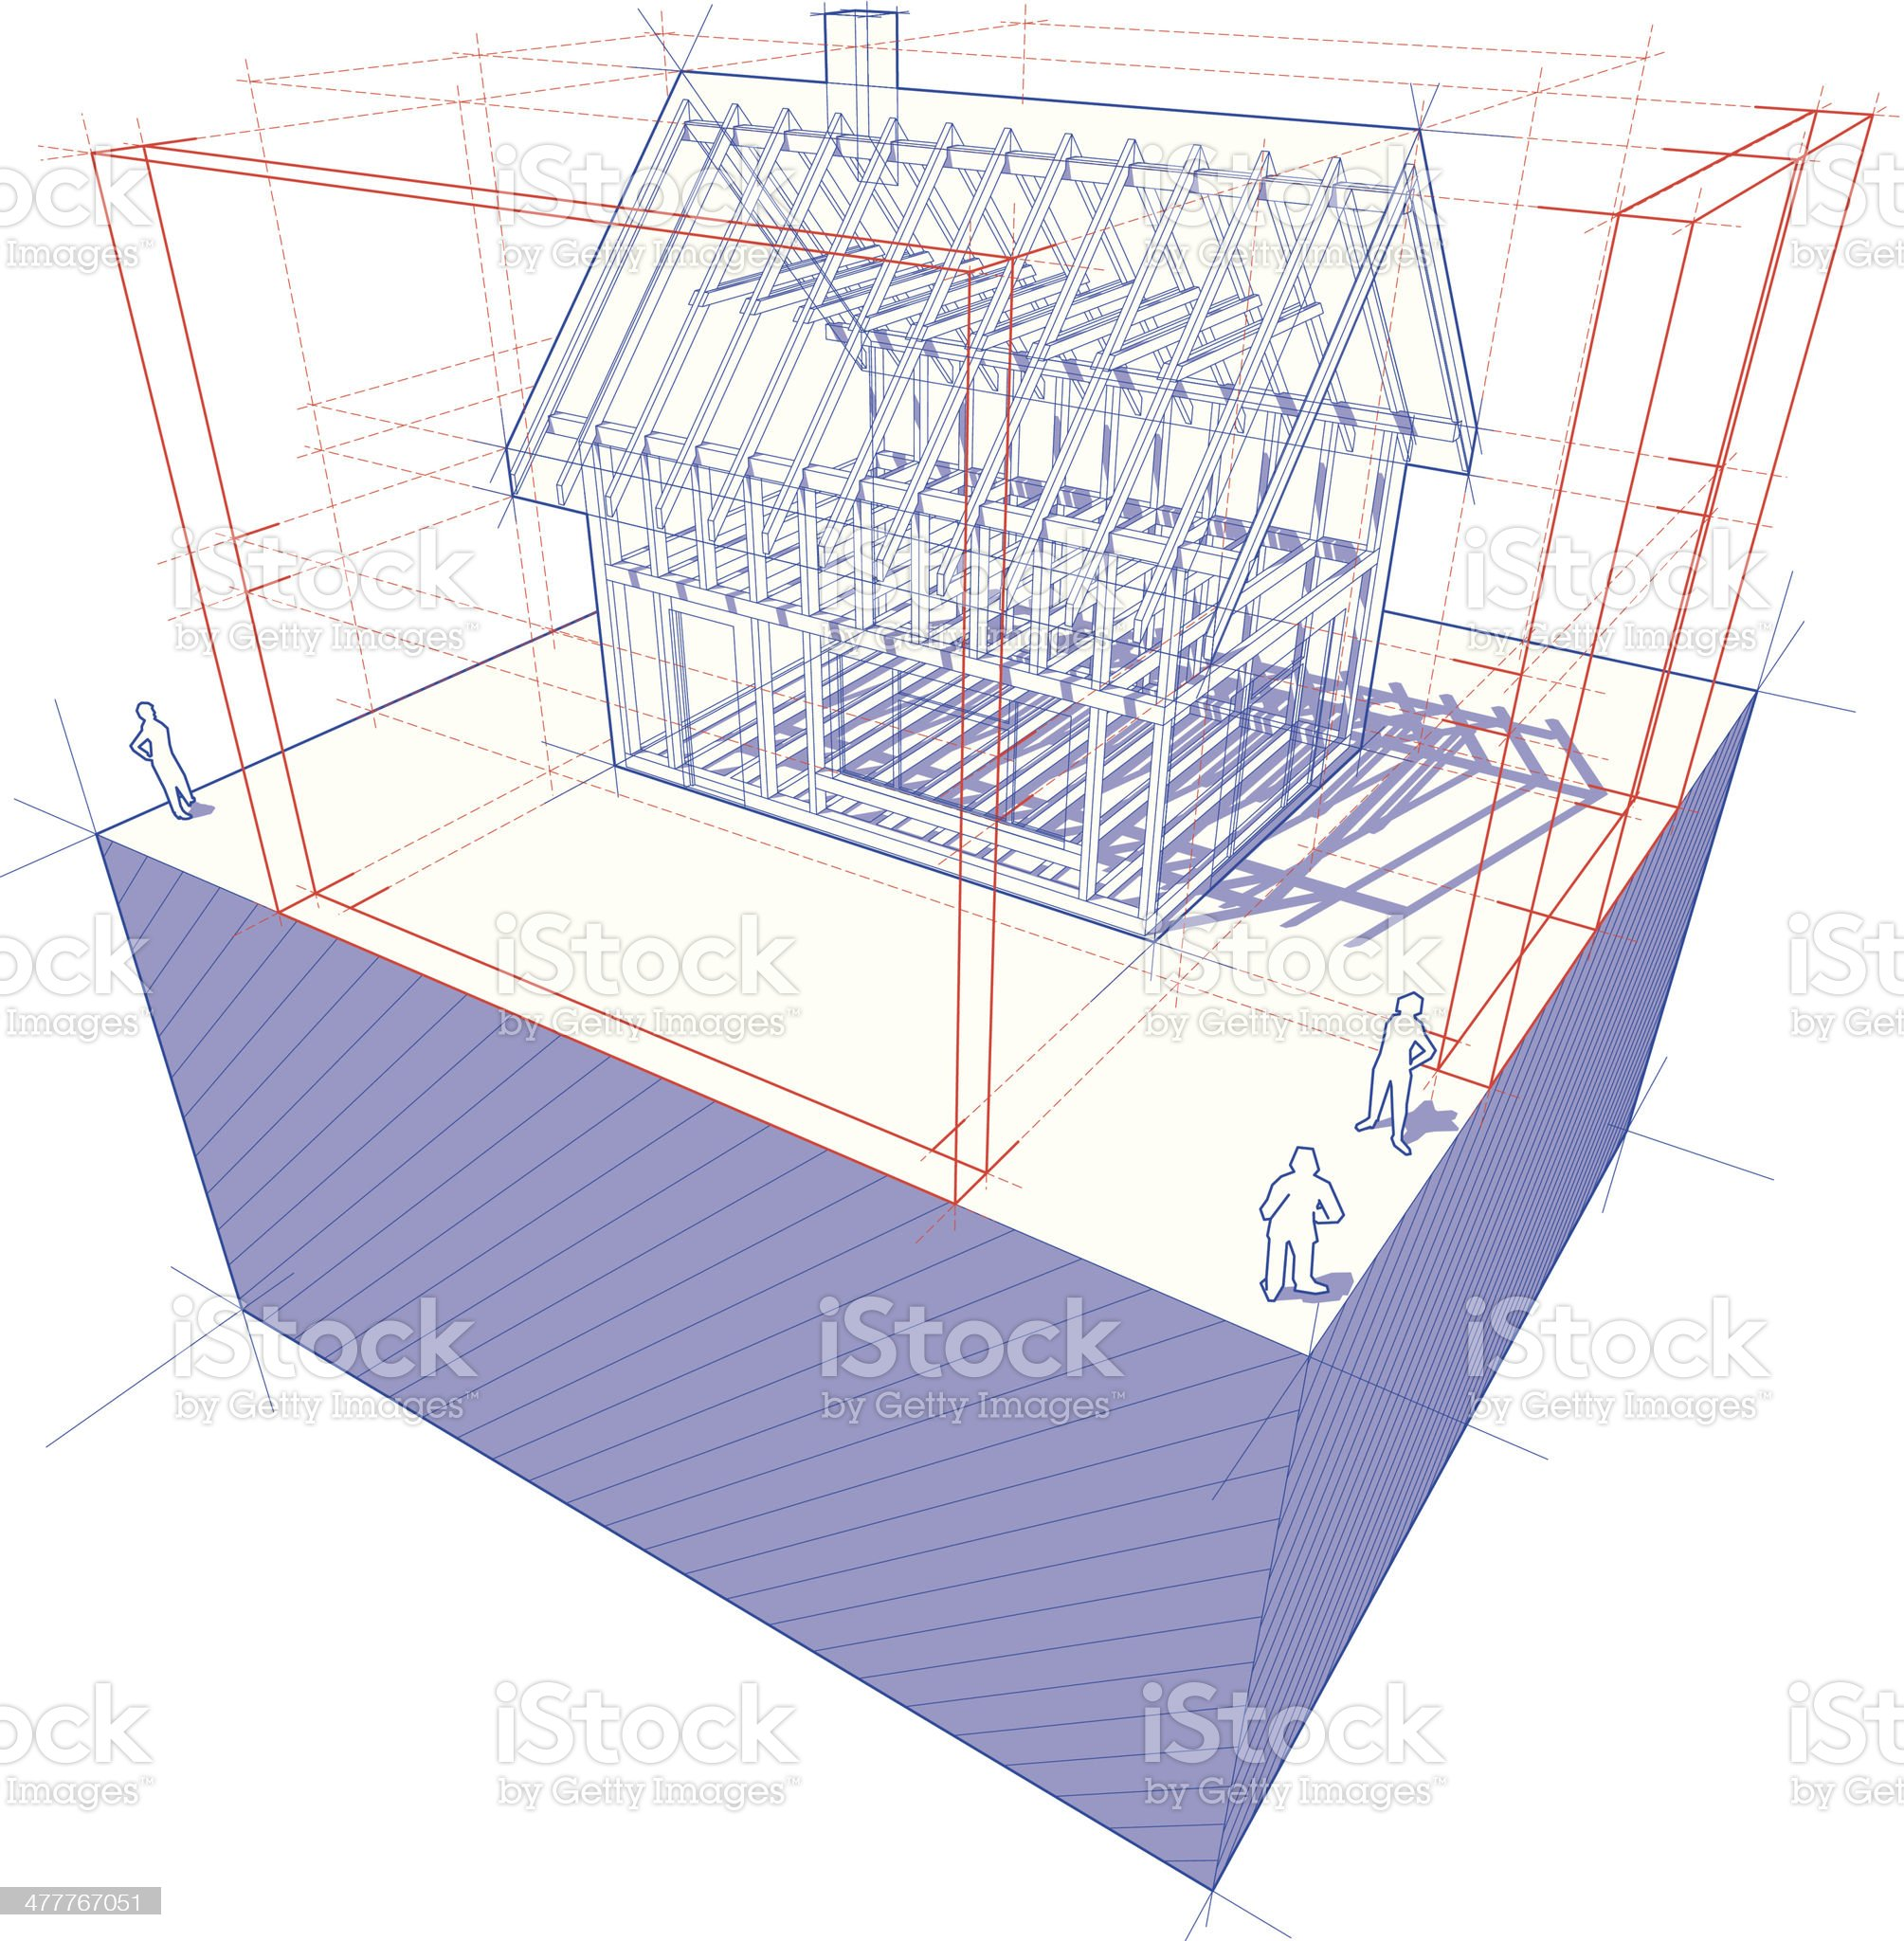 Blueprint of framework house with dimensions diagram royalty-free stock vector art